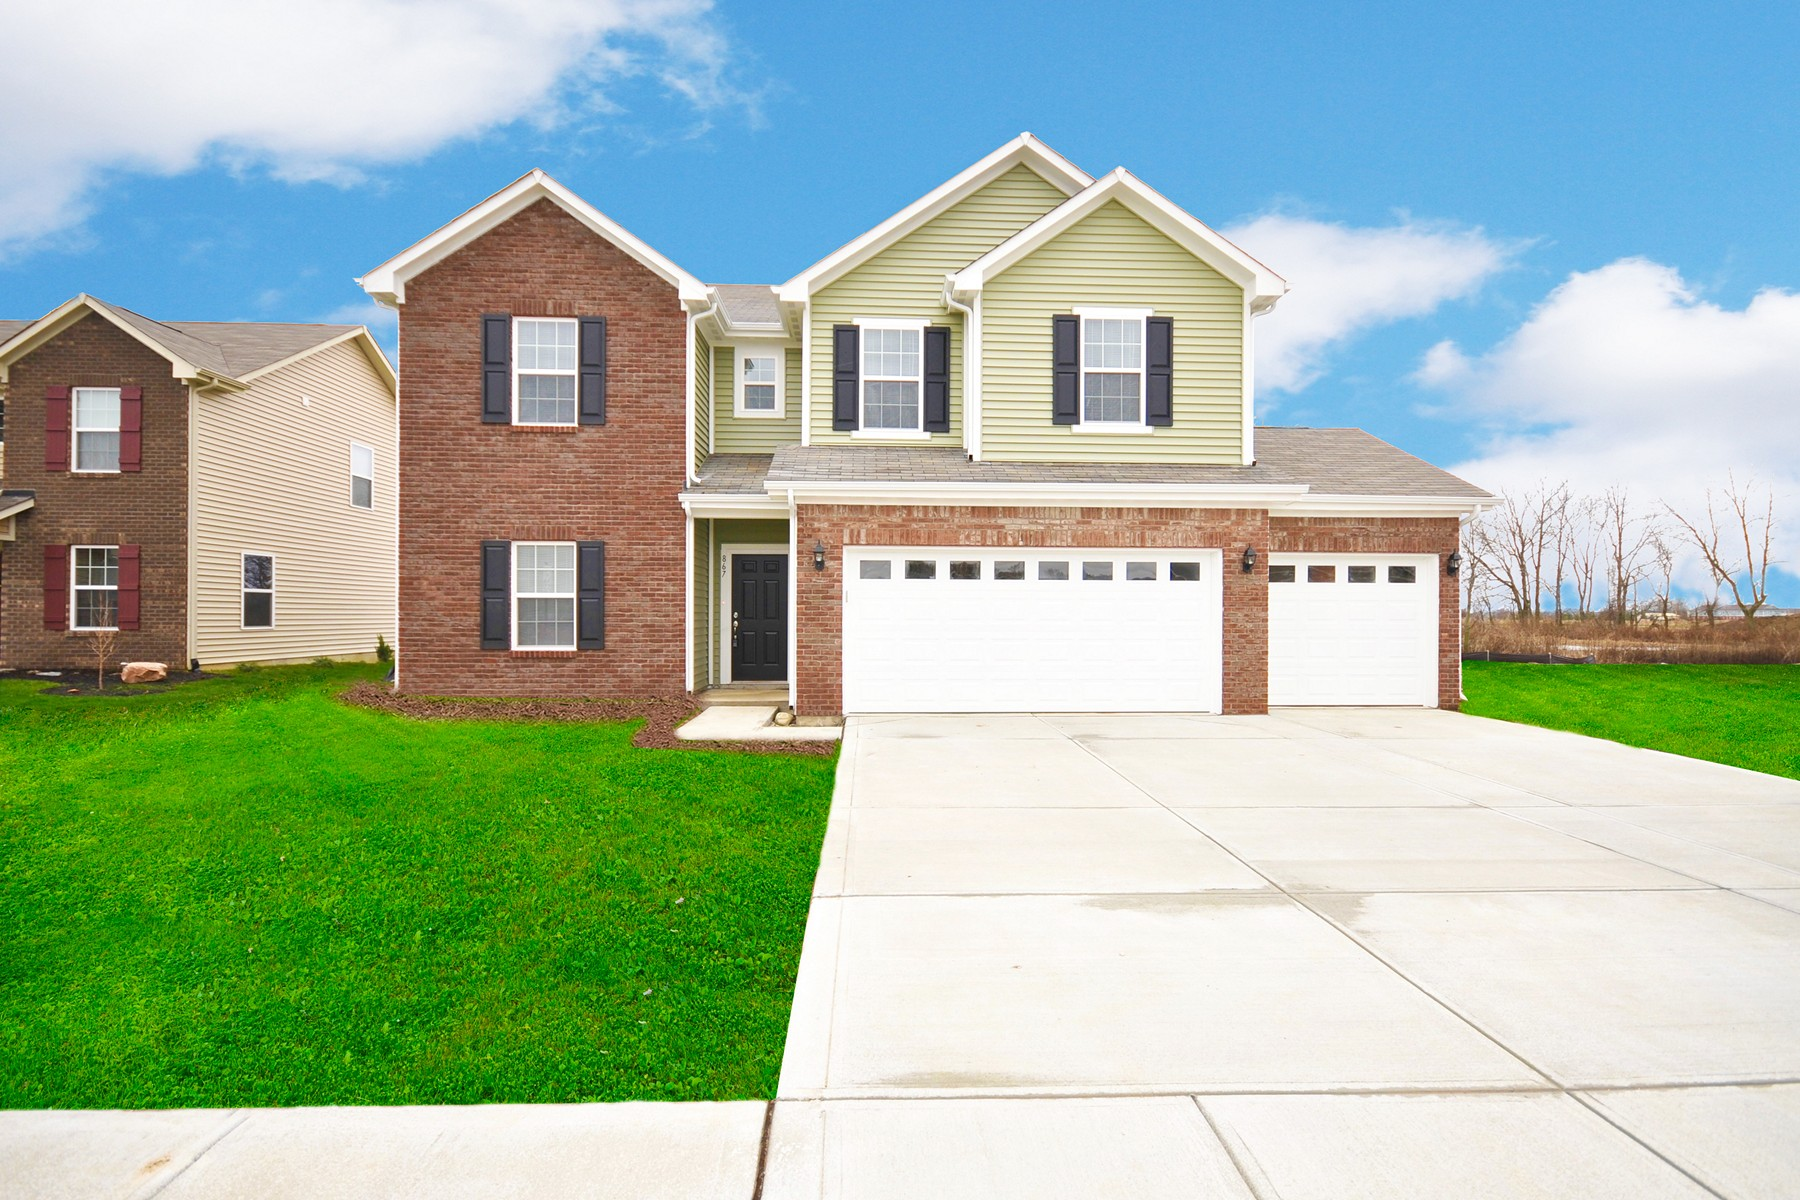 Property For Sale at New Construction 4 Bedroom for Lease